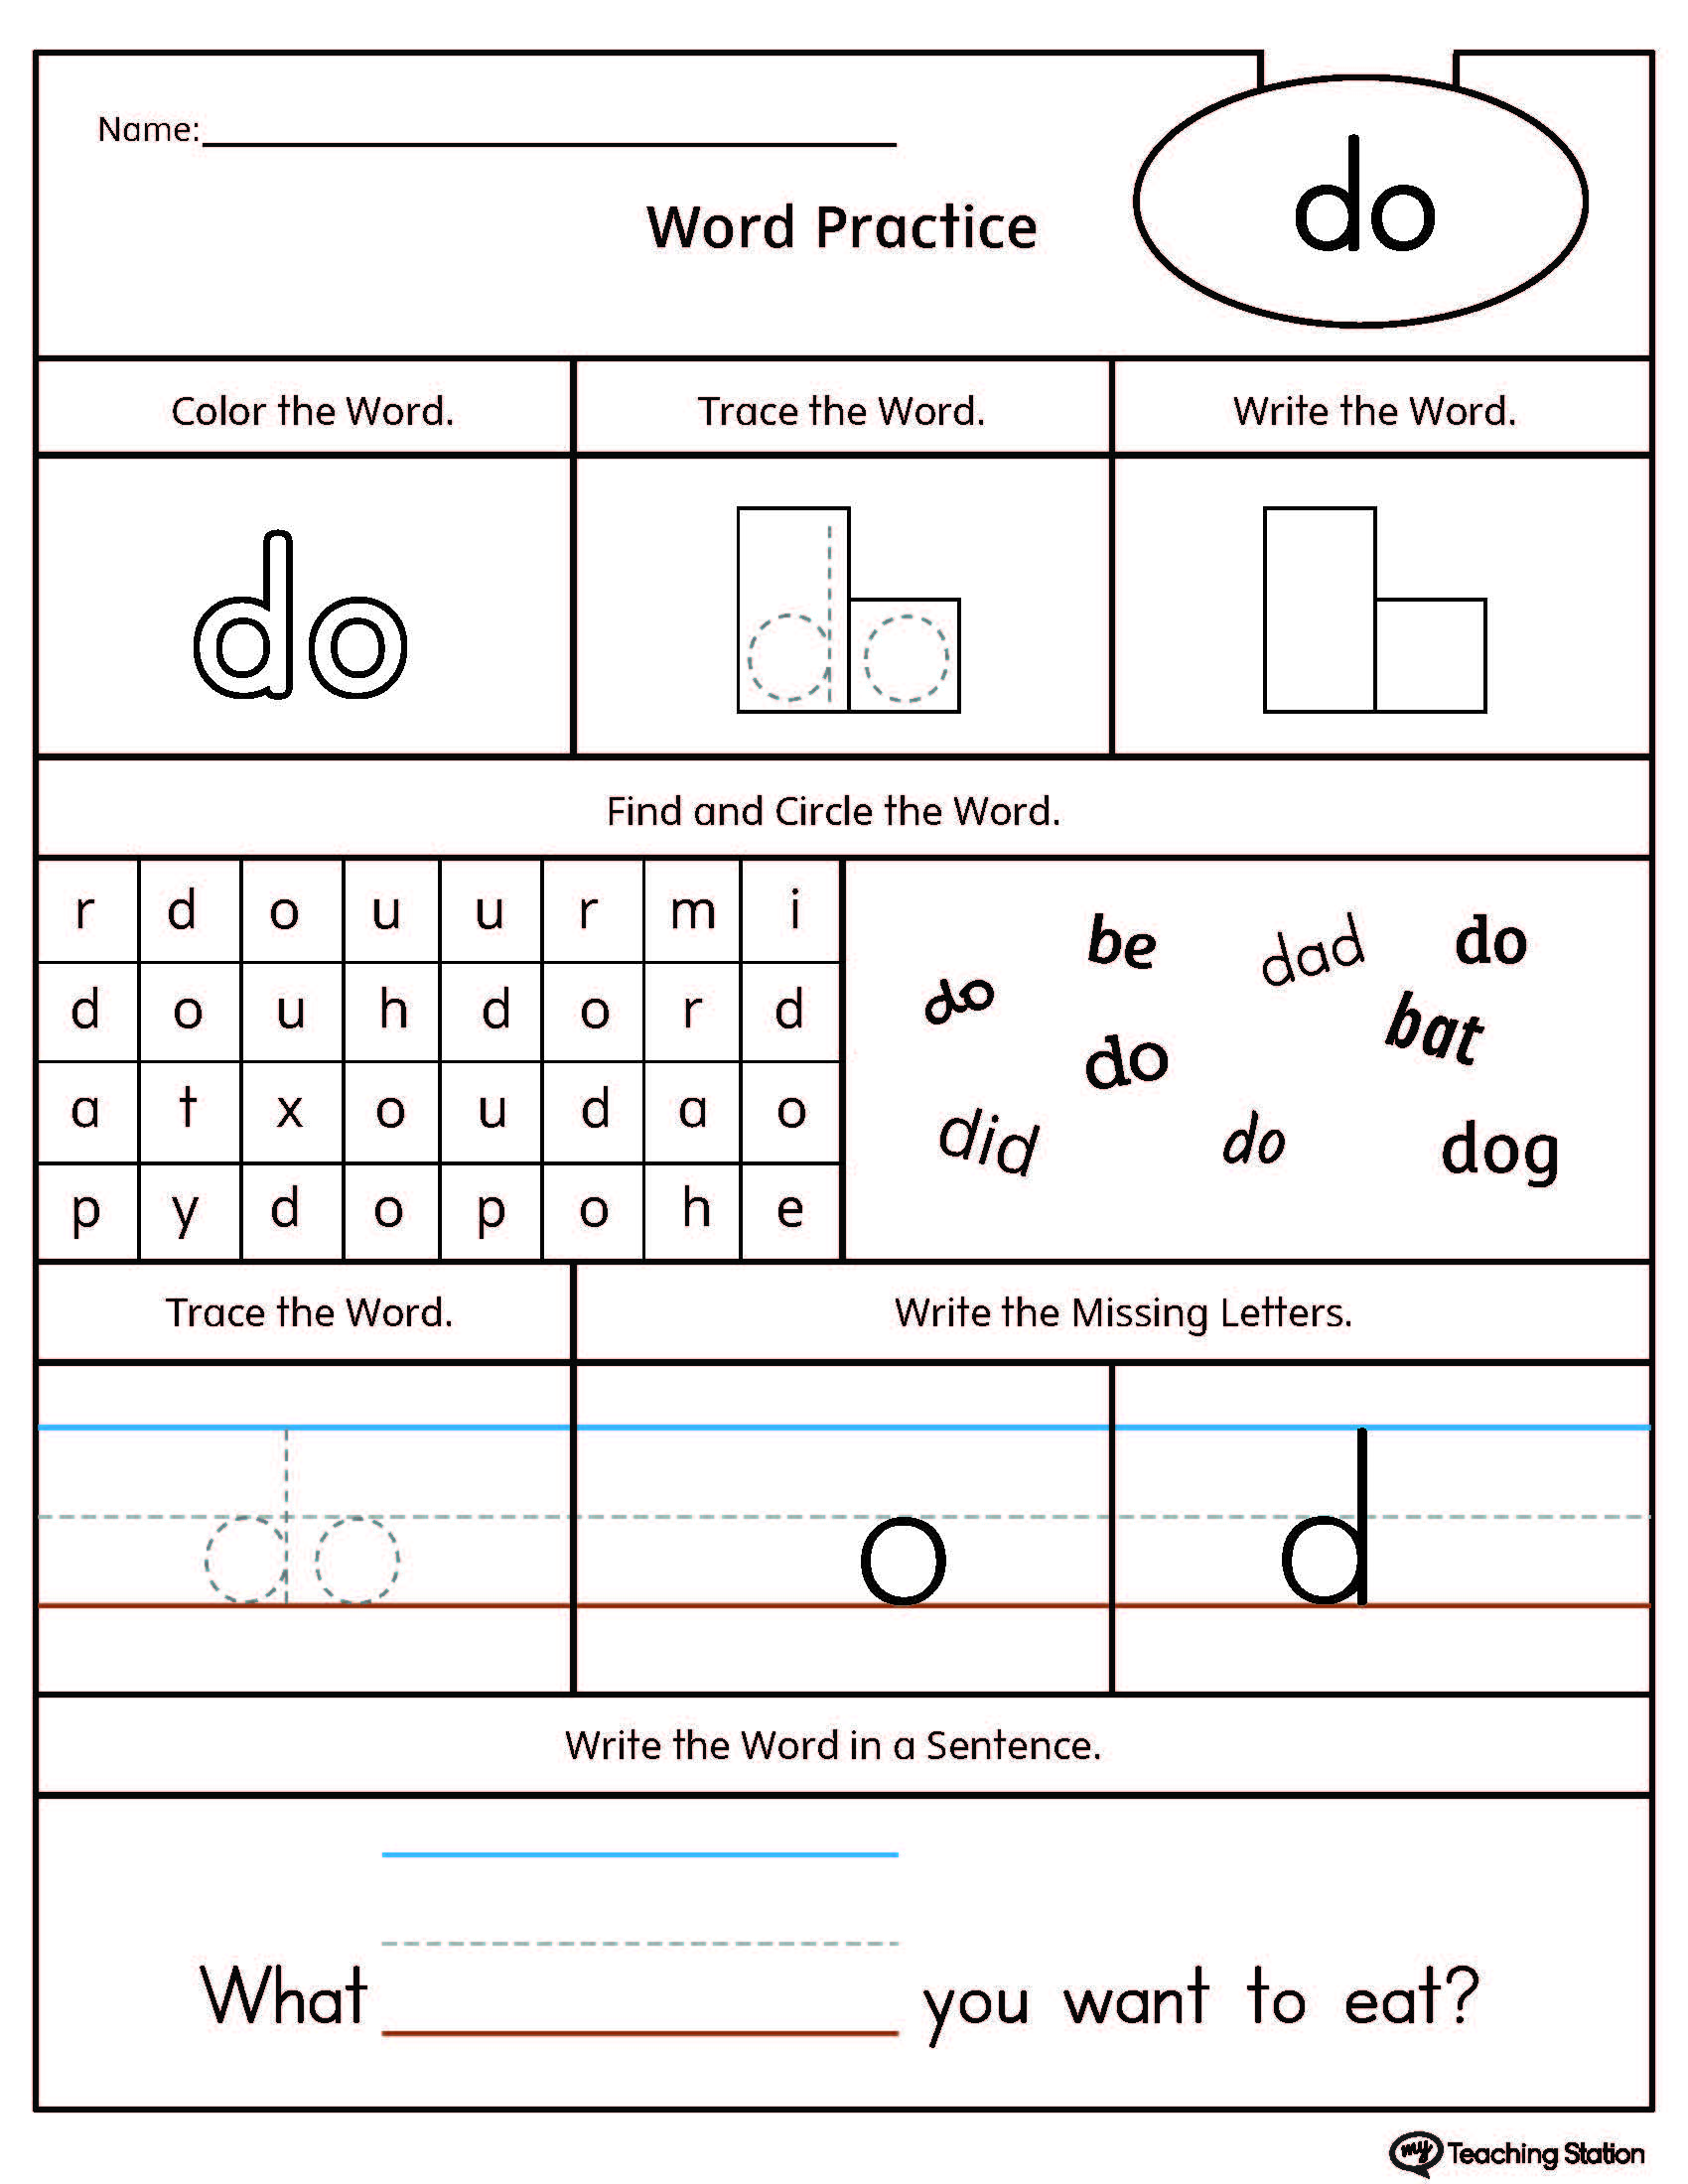 Worksheets Free Printable Worksheets For Kindergarten Sight Words high frequency words printable worksheets myteachingstation com word do worksheet